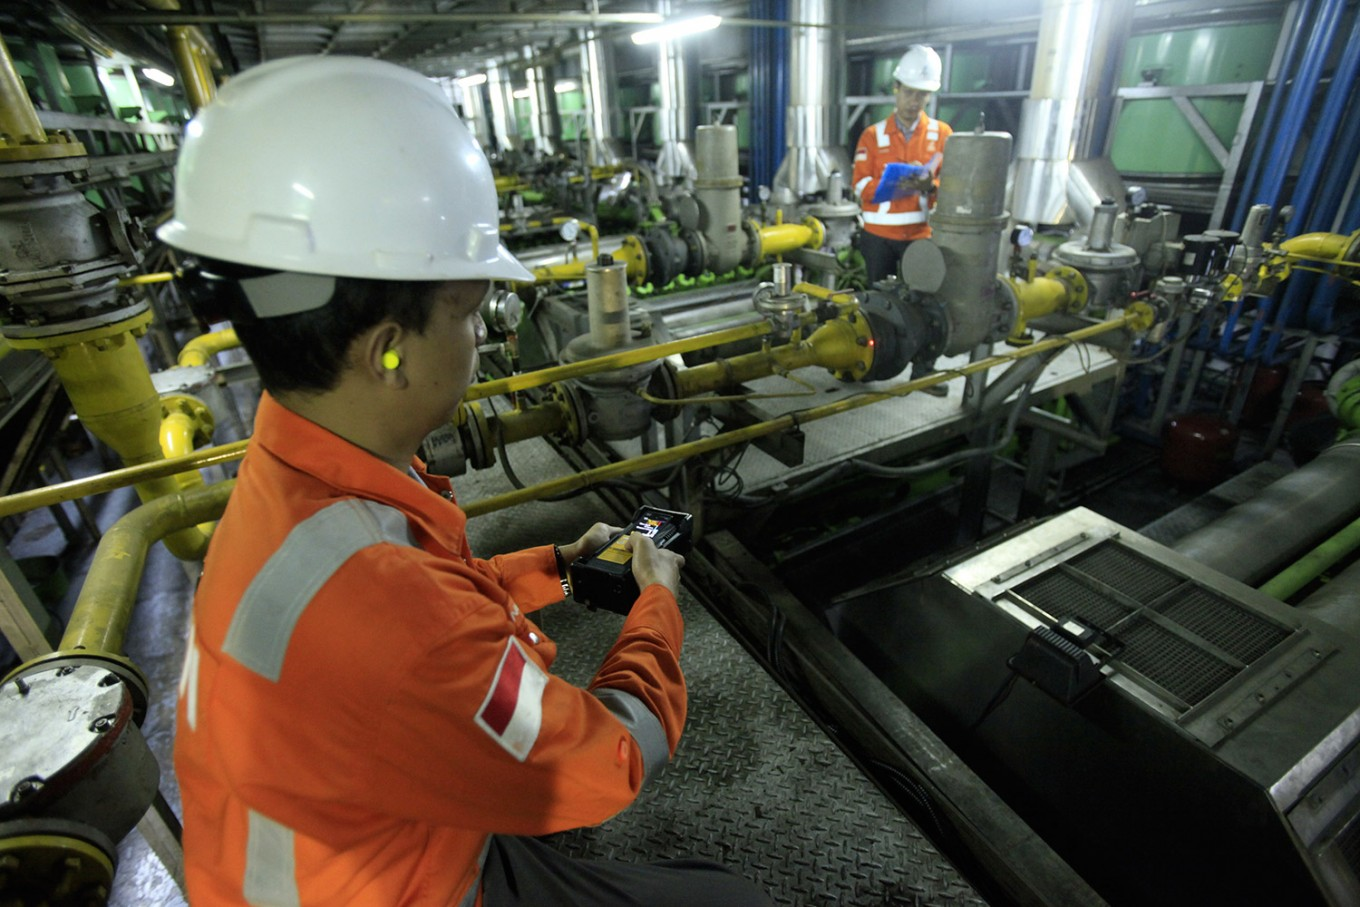 Four sub-holdings established under oil and gas holding company